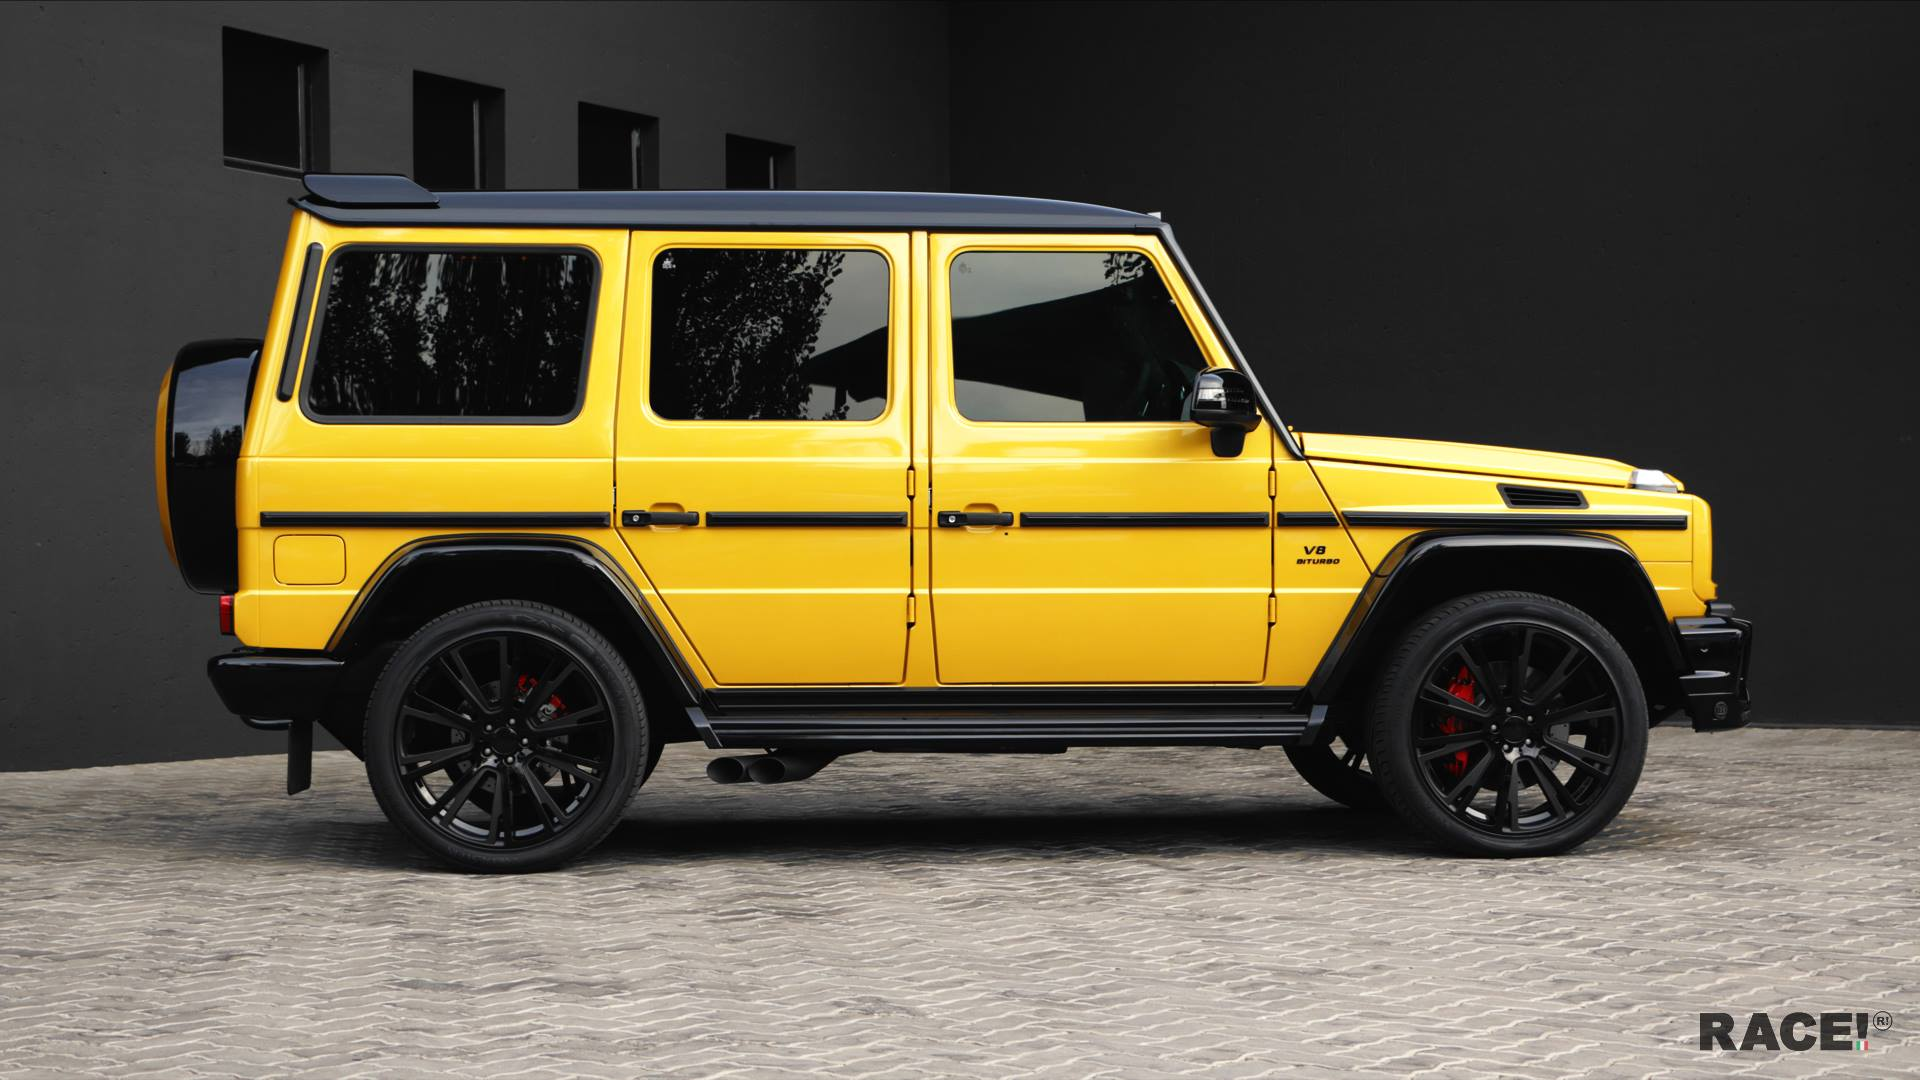 Crazy Color Yellow G63 Amg With Brabus Parts By Race